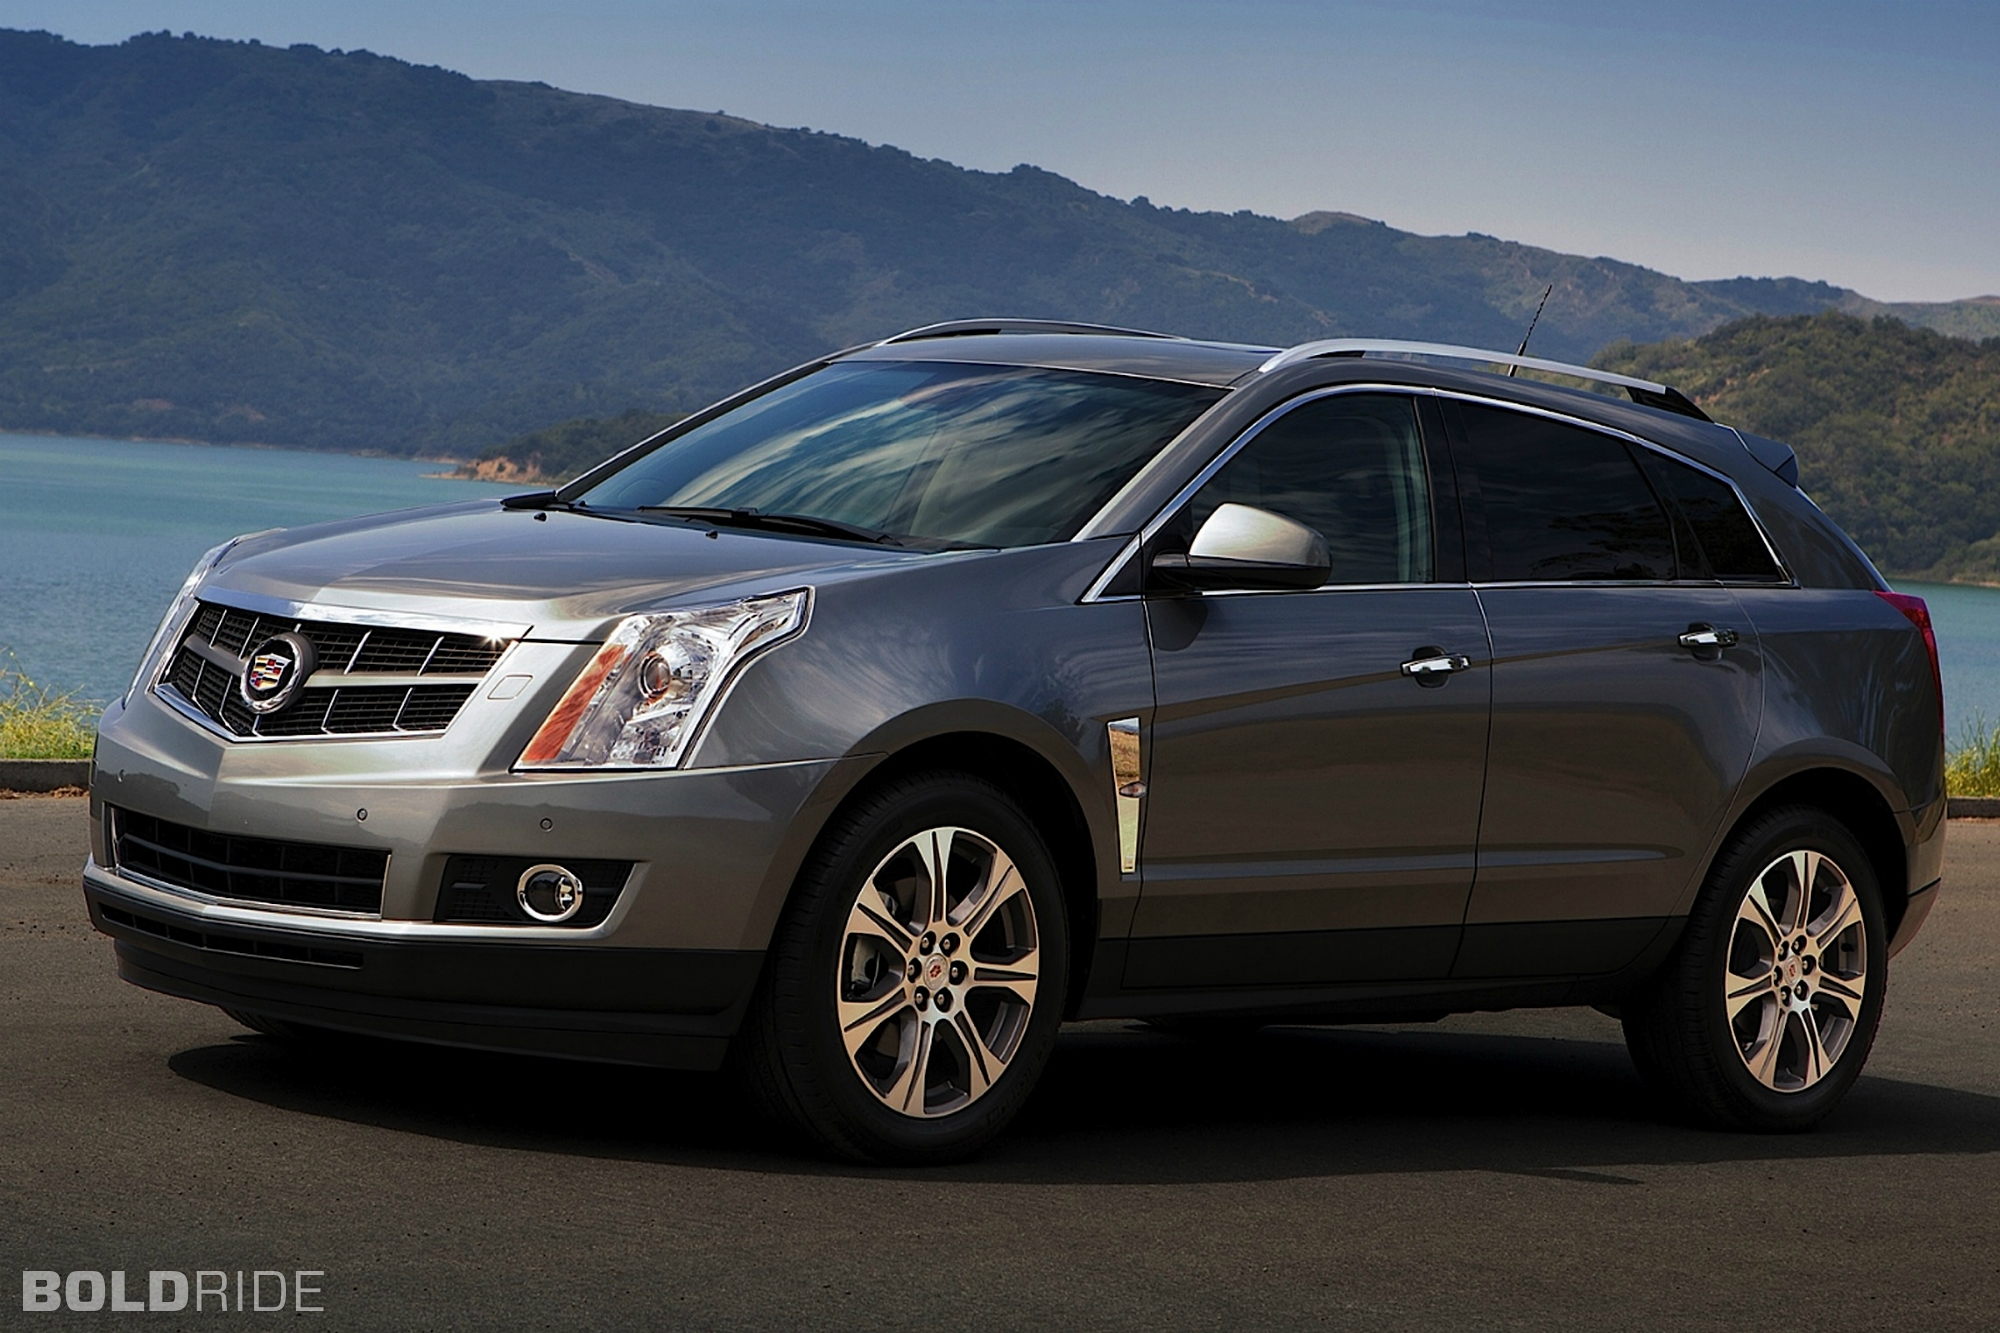 srx price controls features suv stereo wheel interior photos base drive reviews front cadillac